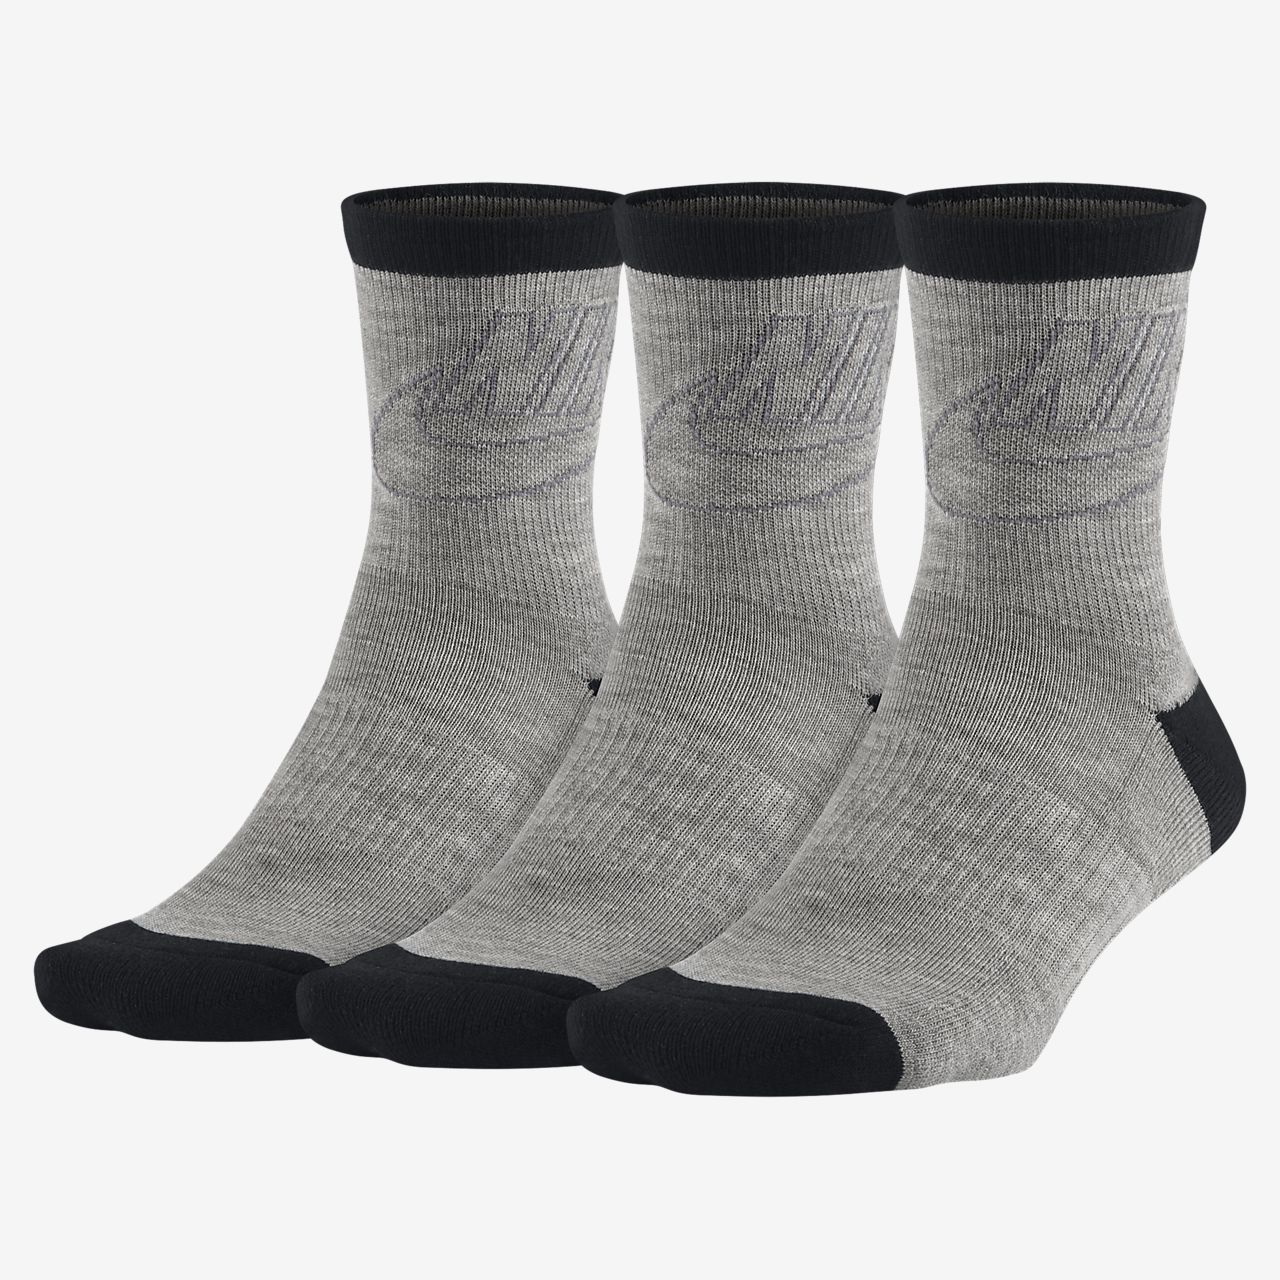 Nike Sportswear Striped Low Crew Socks (3 Pair)